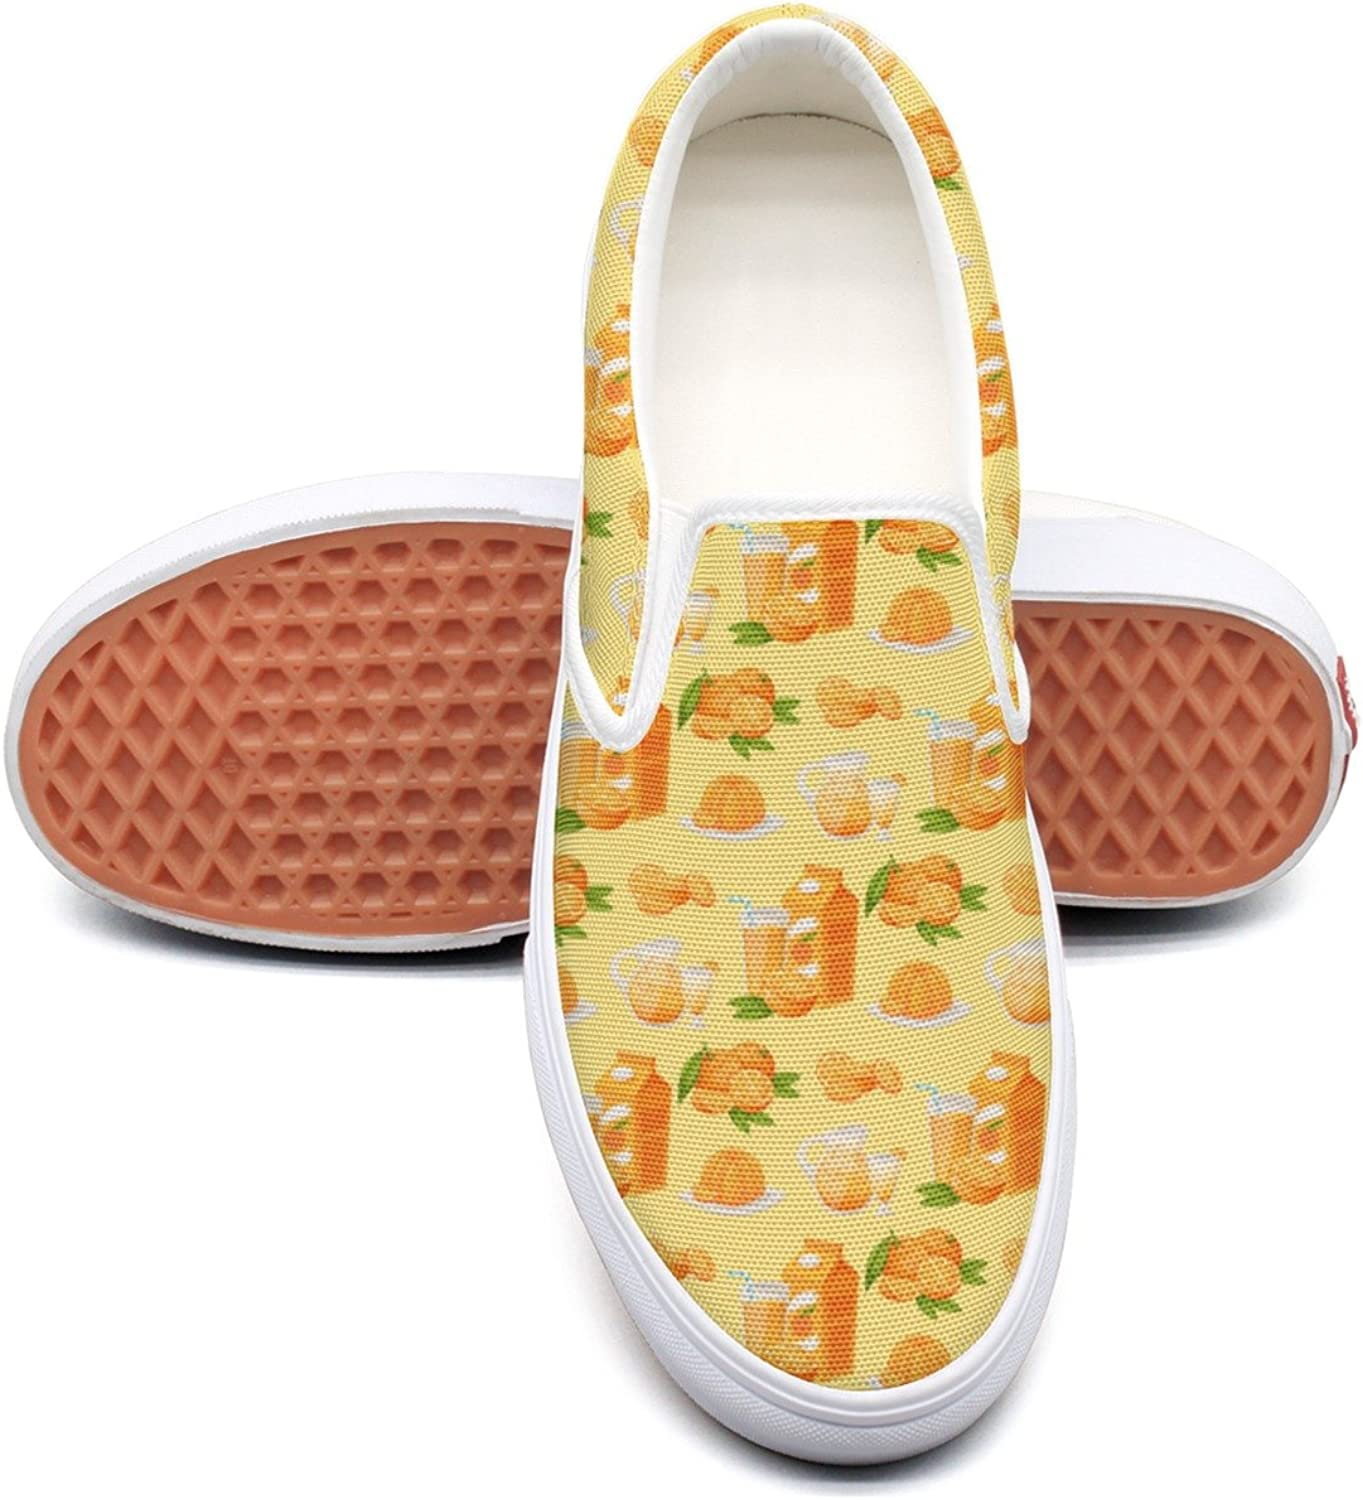 Hjkggd fgfds Casual Annoying orange Juice Women's Canvas shoes